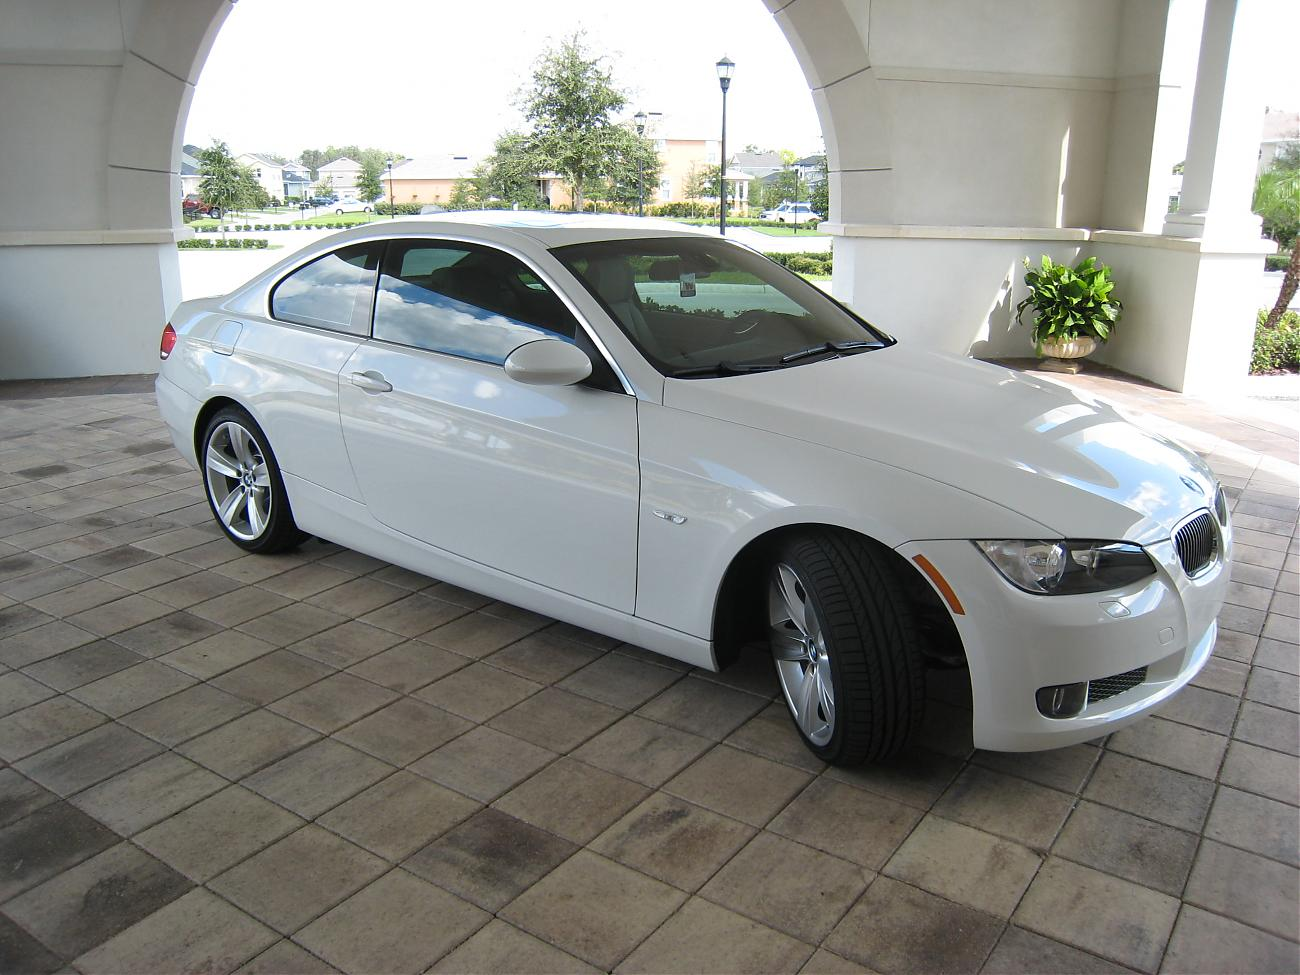 Official window tinting picture thread page 9 for 16 window tint